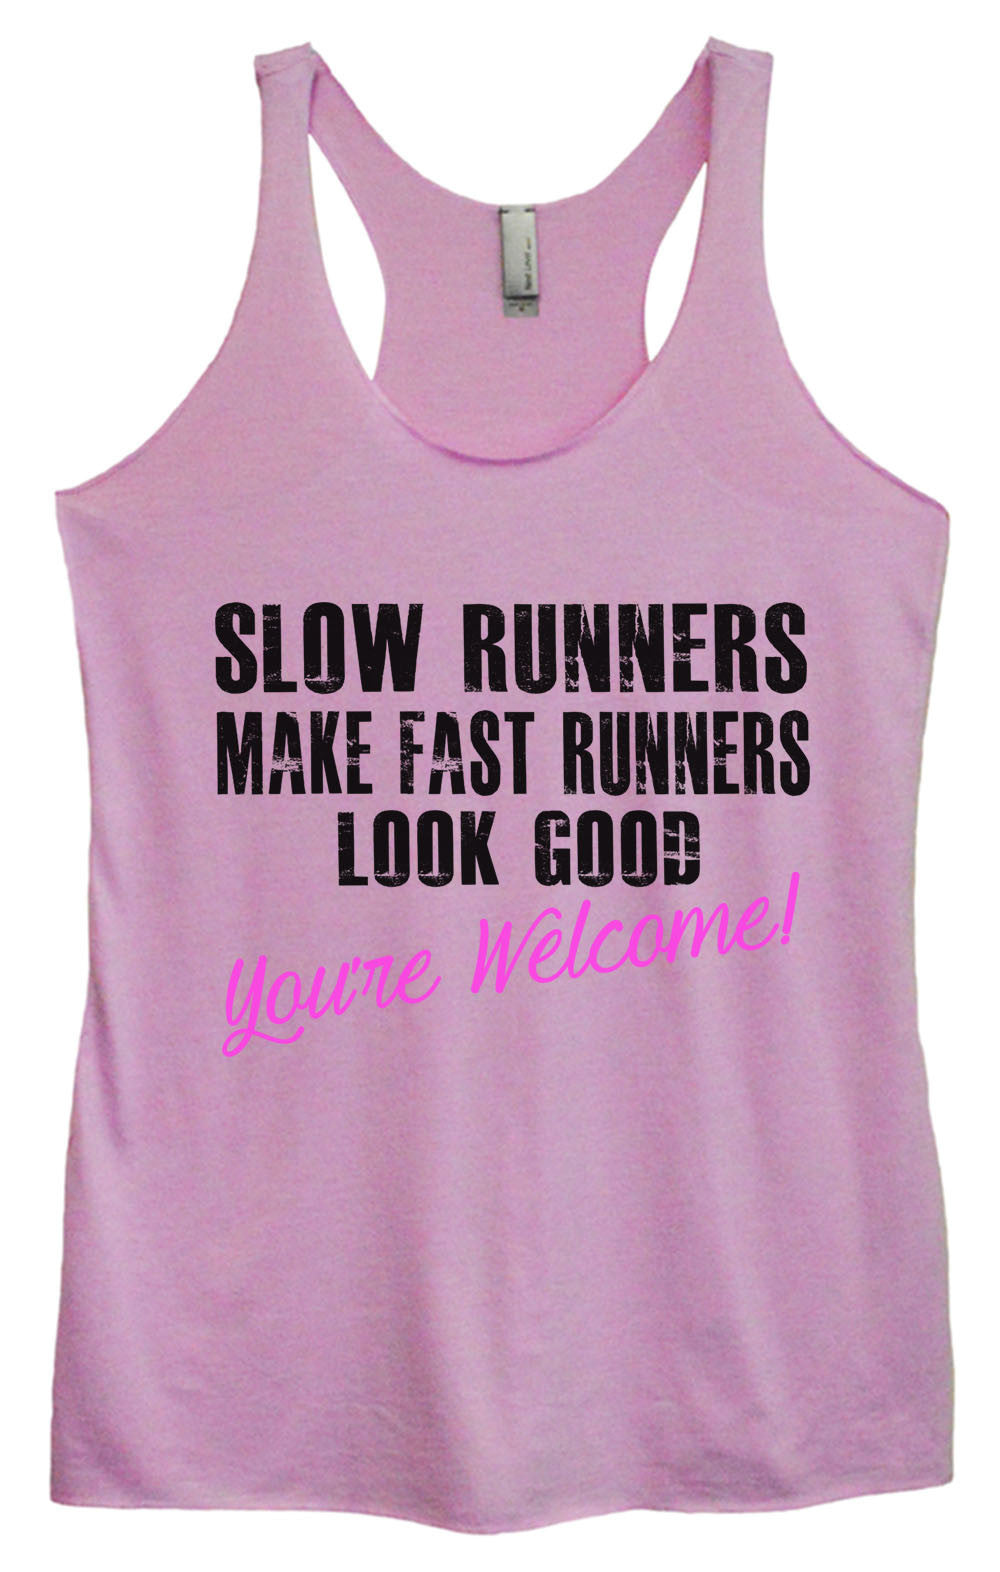 Womens Fashion Triblend Tank Top - Slow Runnres Make Fast Runners Look Good You're Welcome! - Tri-735 - Funny Shirts Tank Tops Burnouts and Triblends  - 3